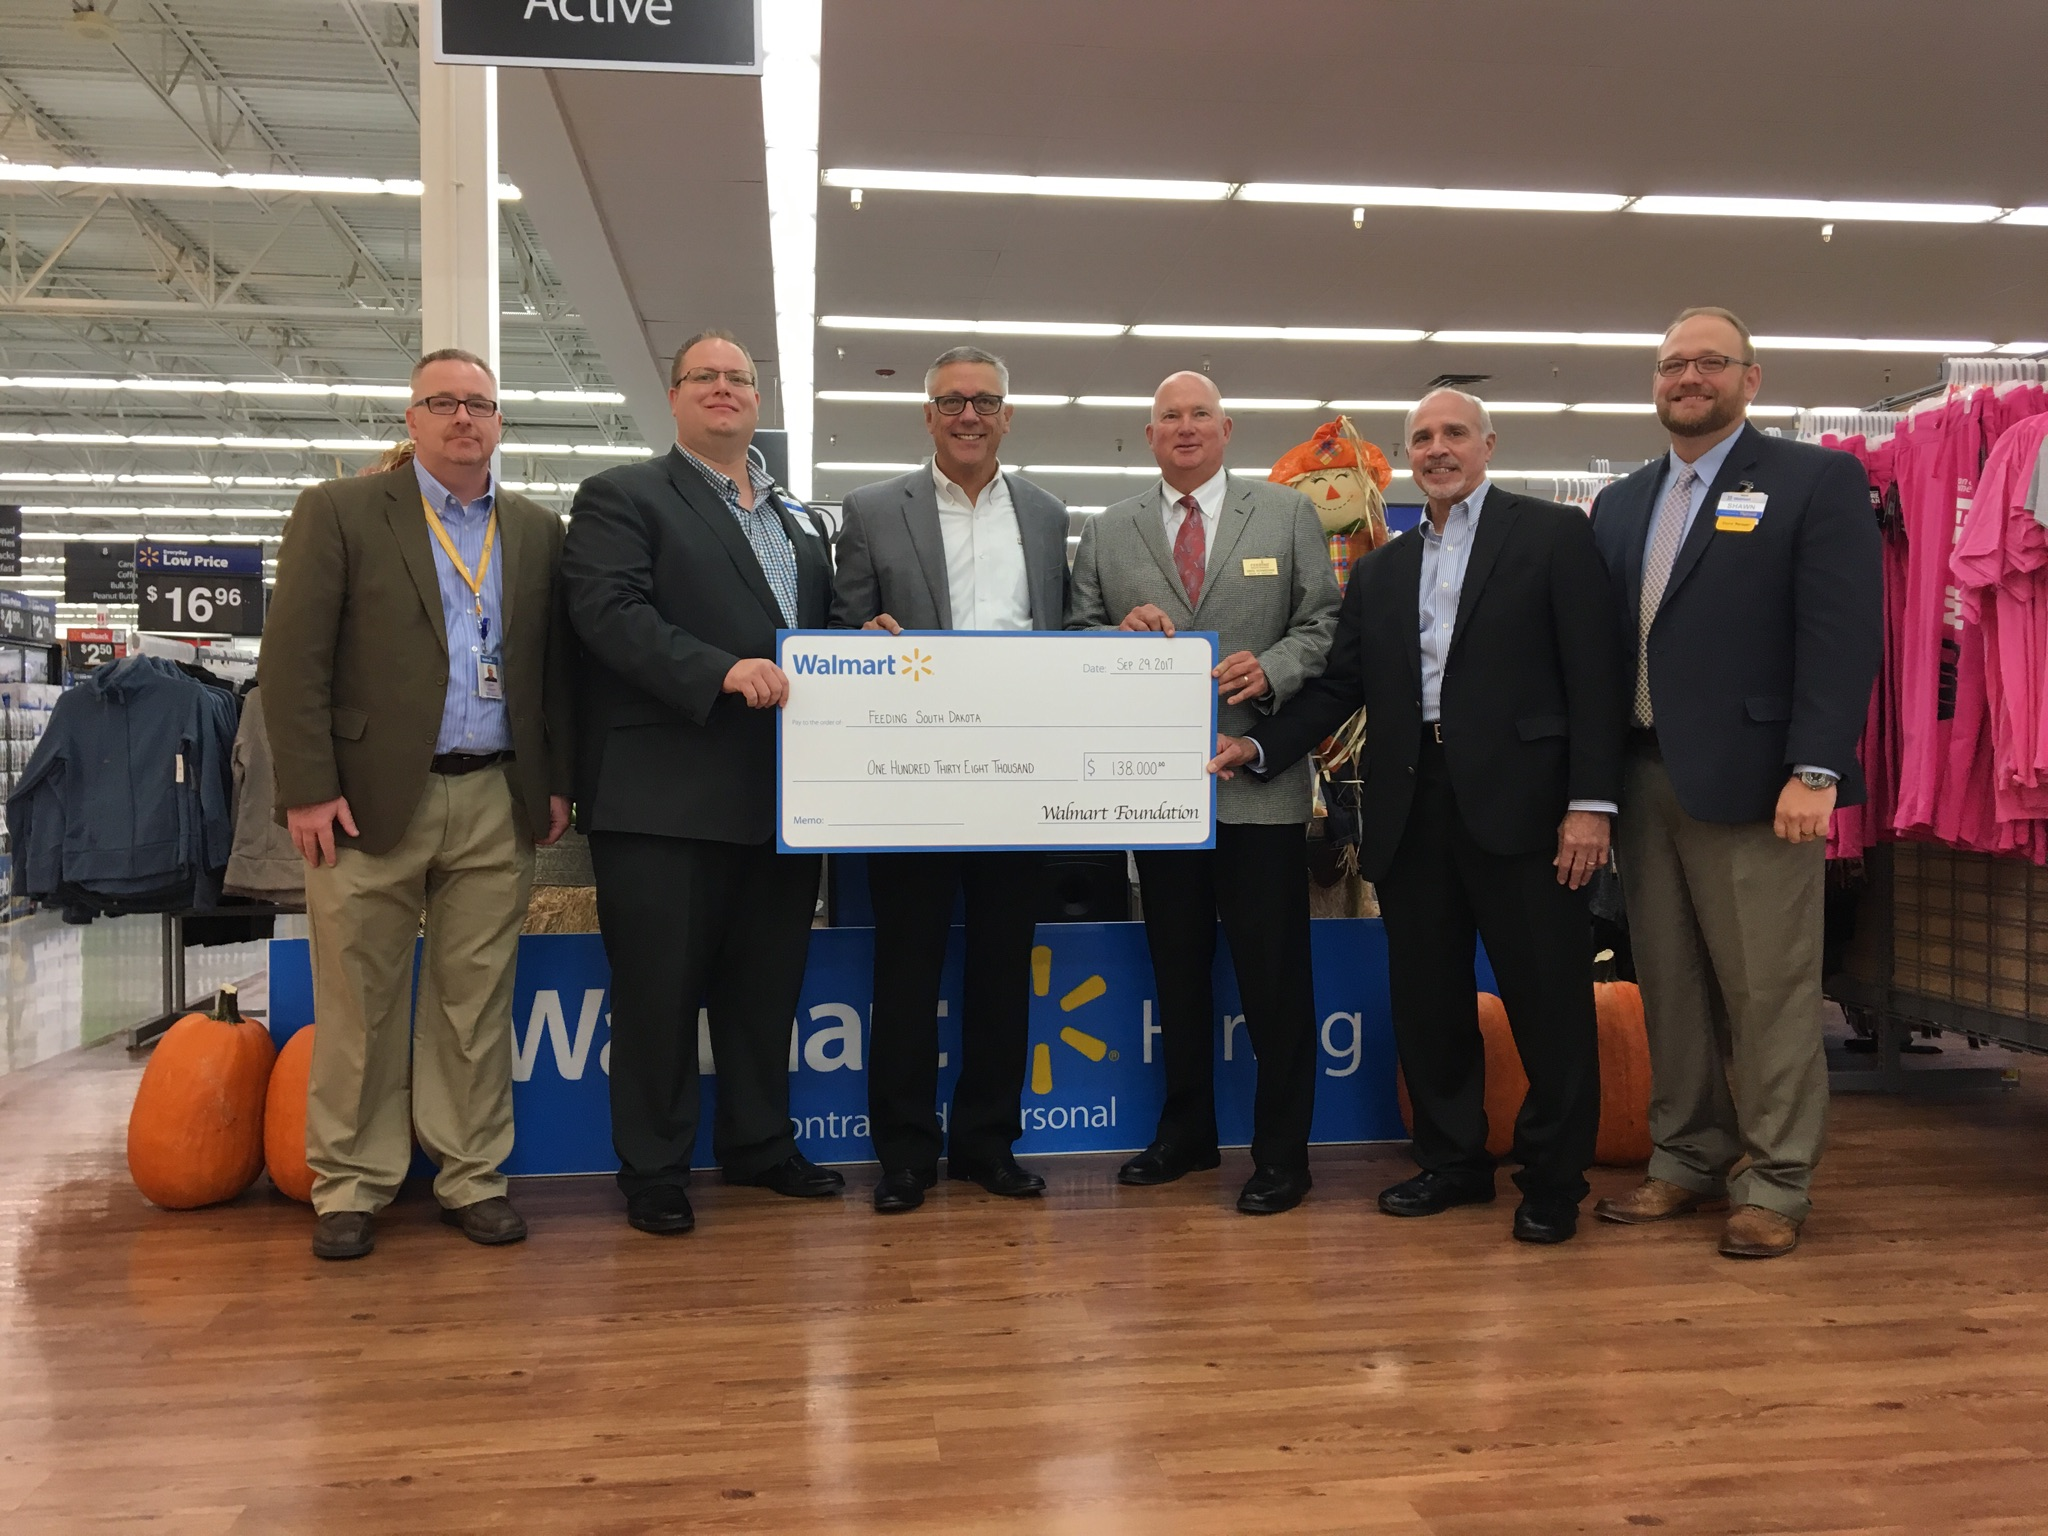 Walmart Helps Fight Hunger By Donating Over 100K To Feeding South Dakota